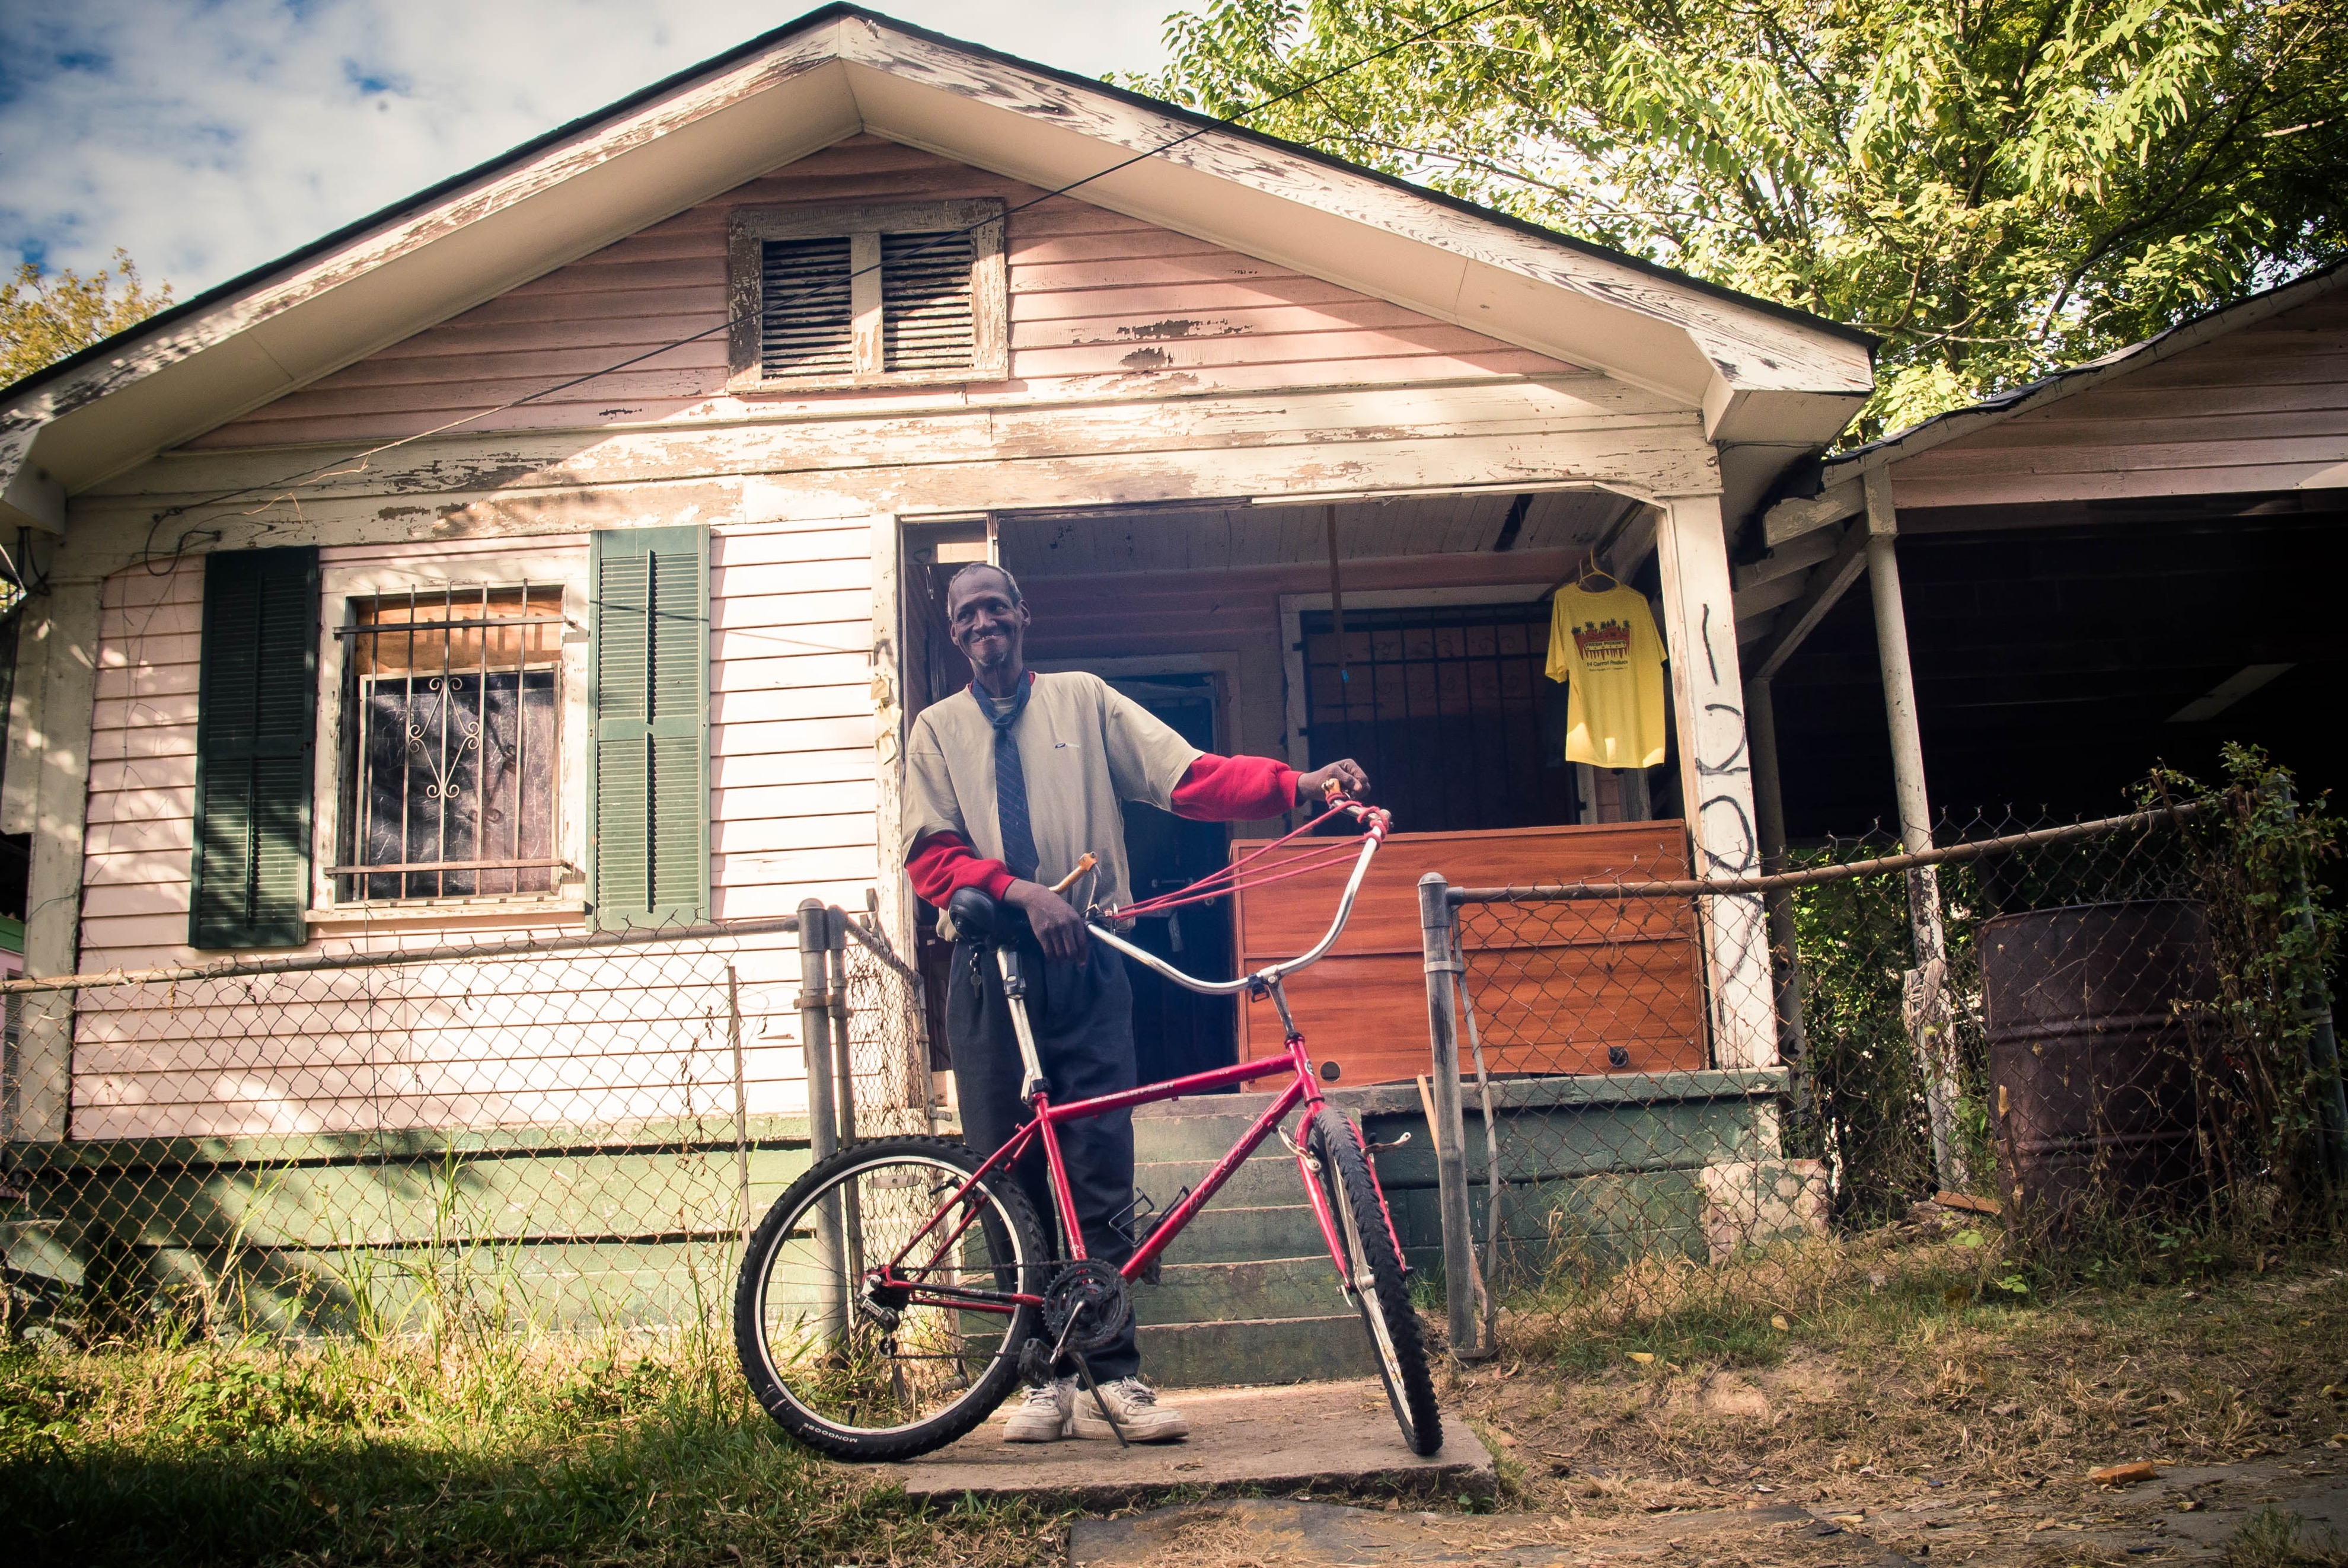 A work by Does - Baton rouge usa bike selina miles